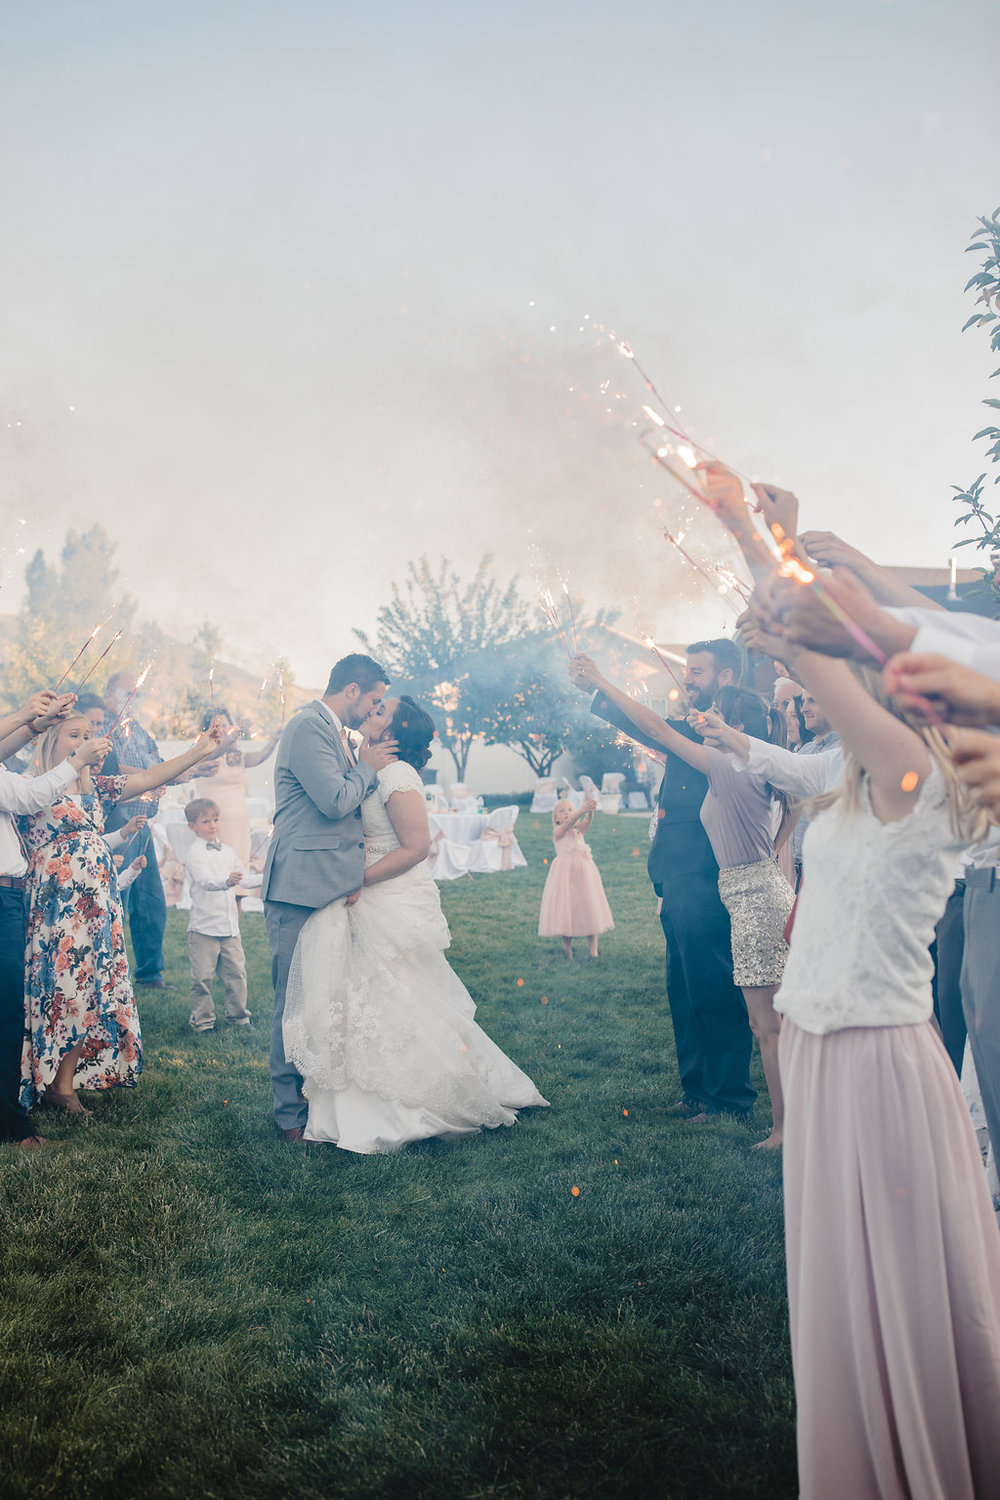 bride and groom send off with sparklers wedding day kiss monroe utah wedding photographer calli richards